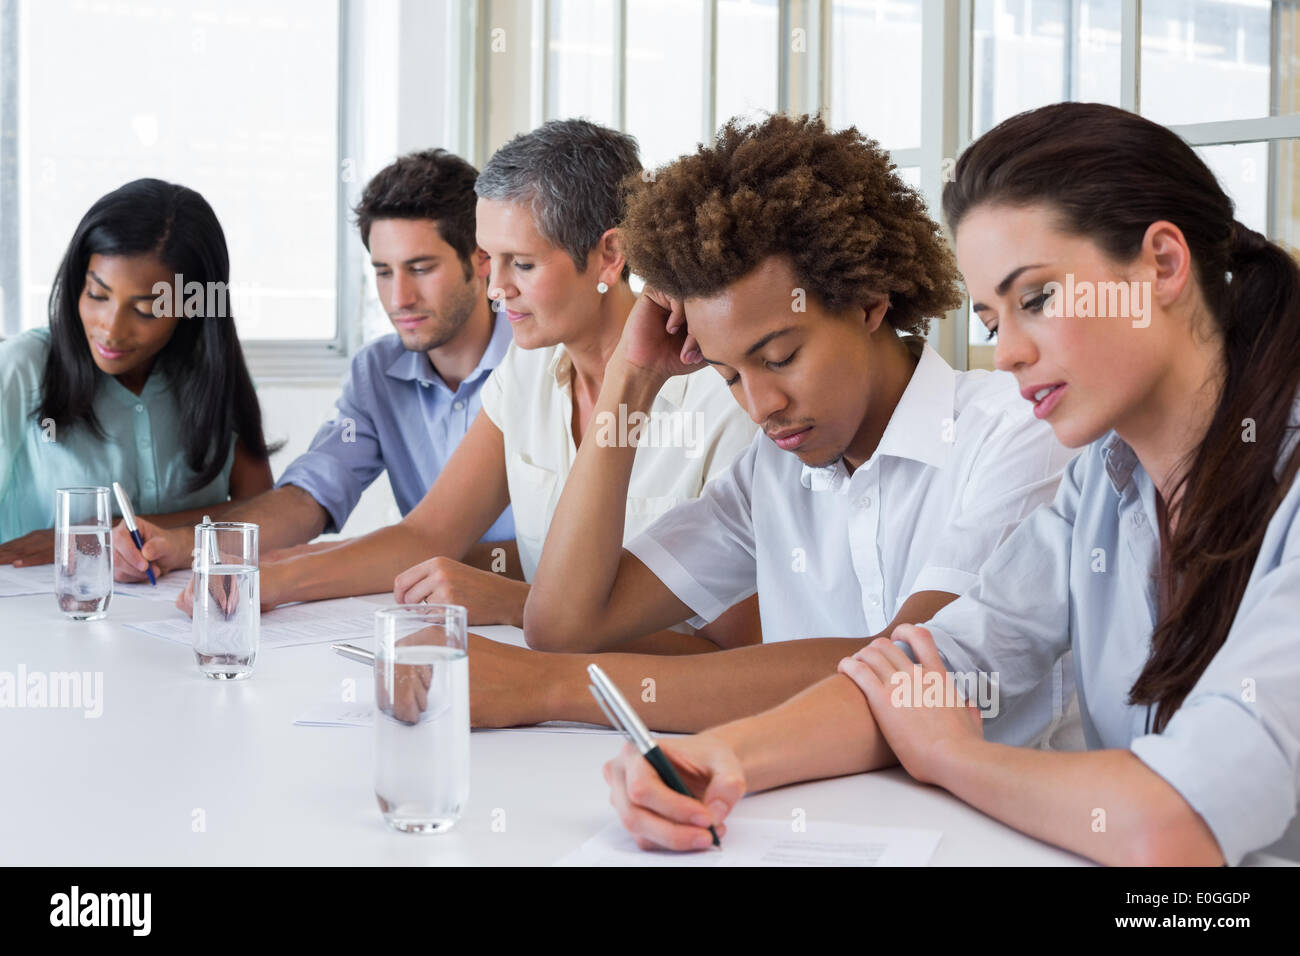 Business people taking down important notes - Stock Image